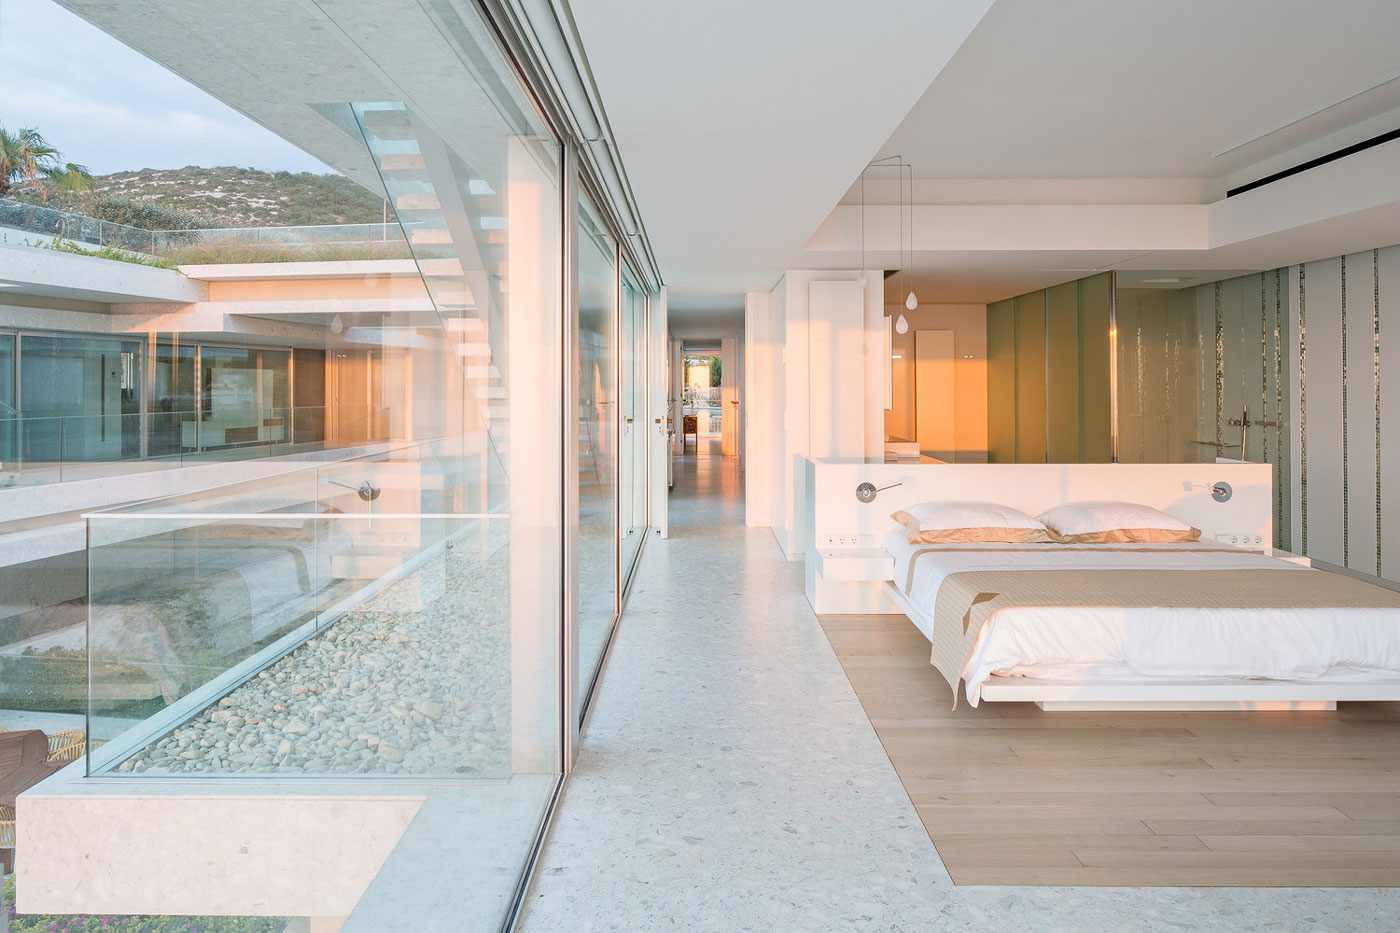 Bedroom, glass walls